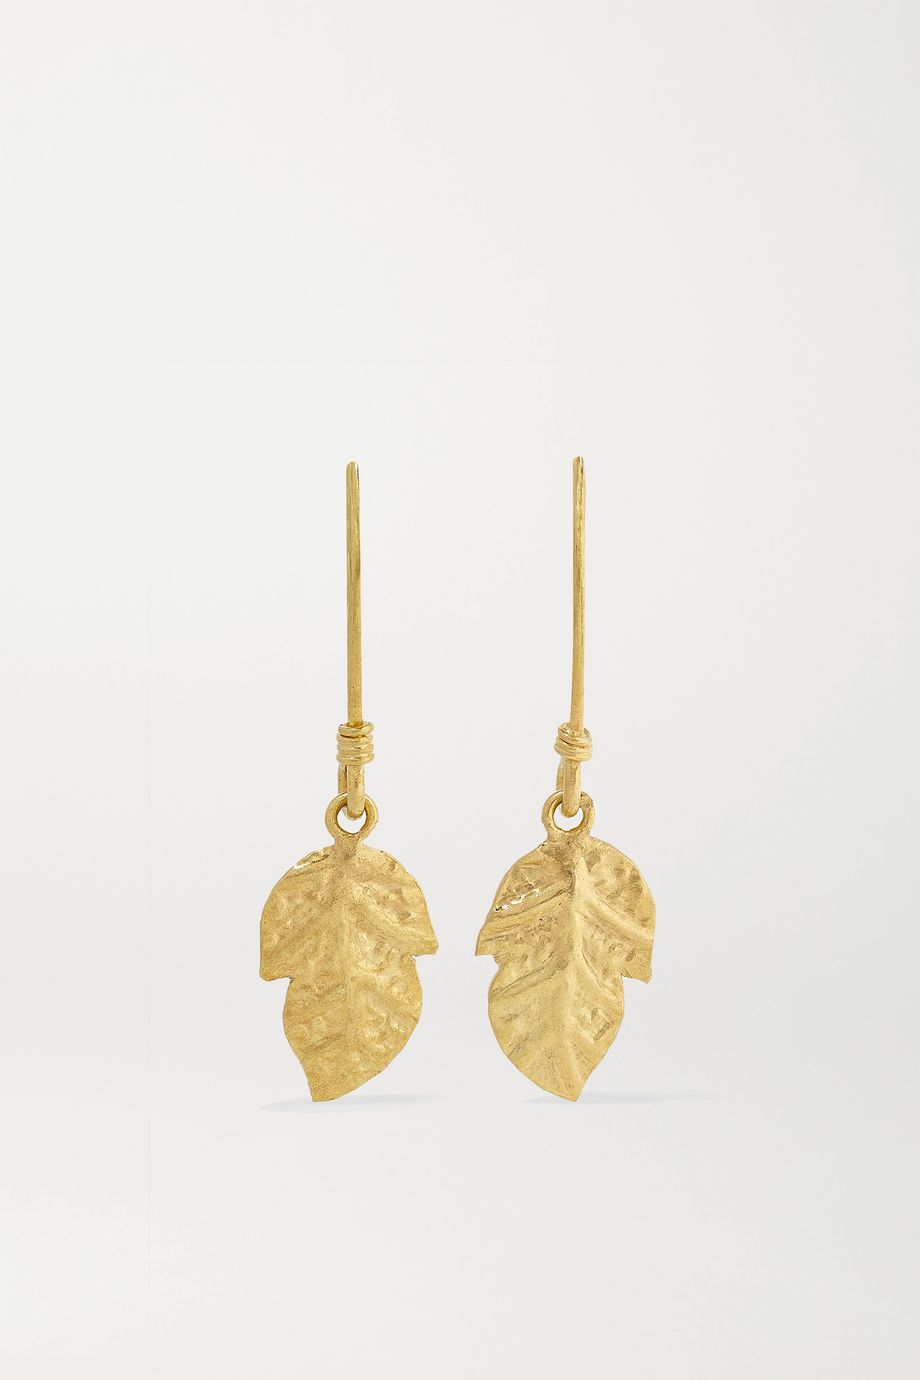 Pippa Small 18-karat gold earrings